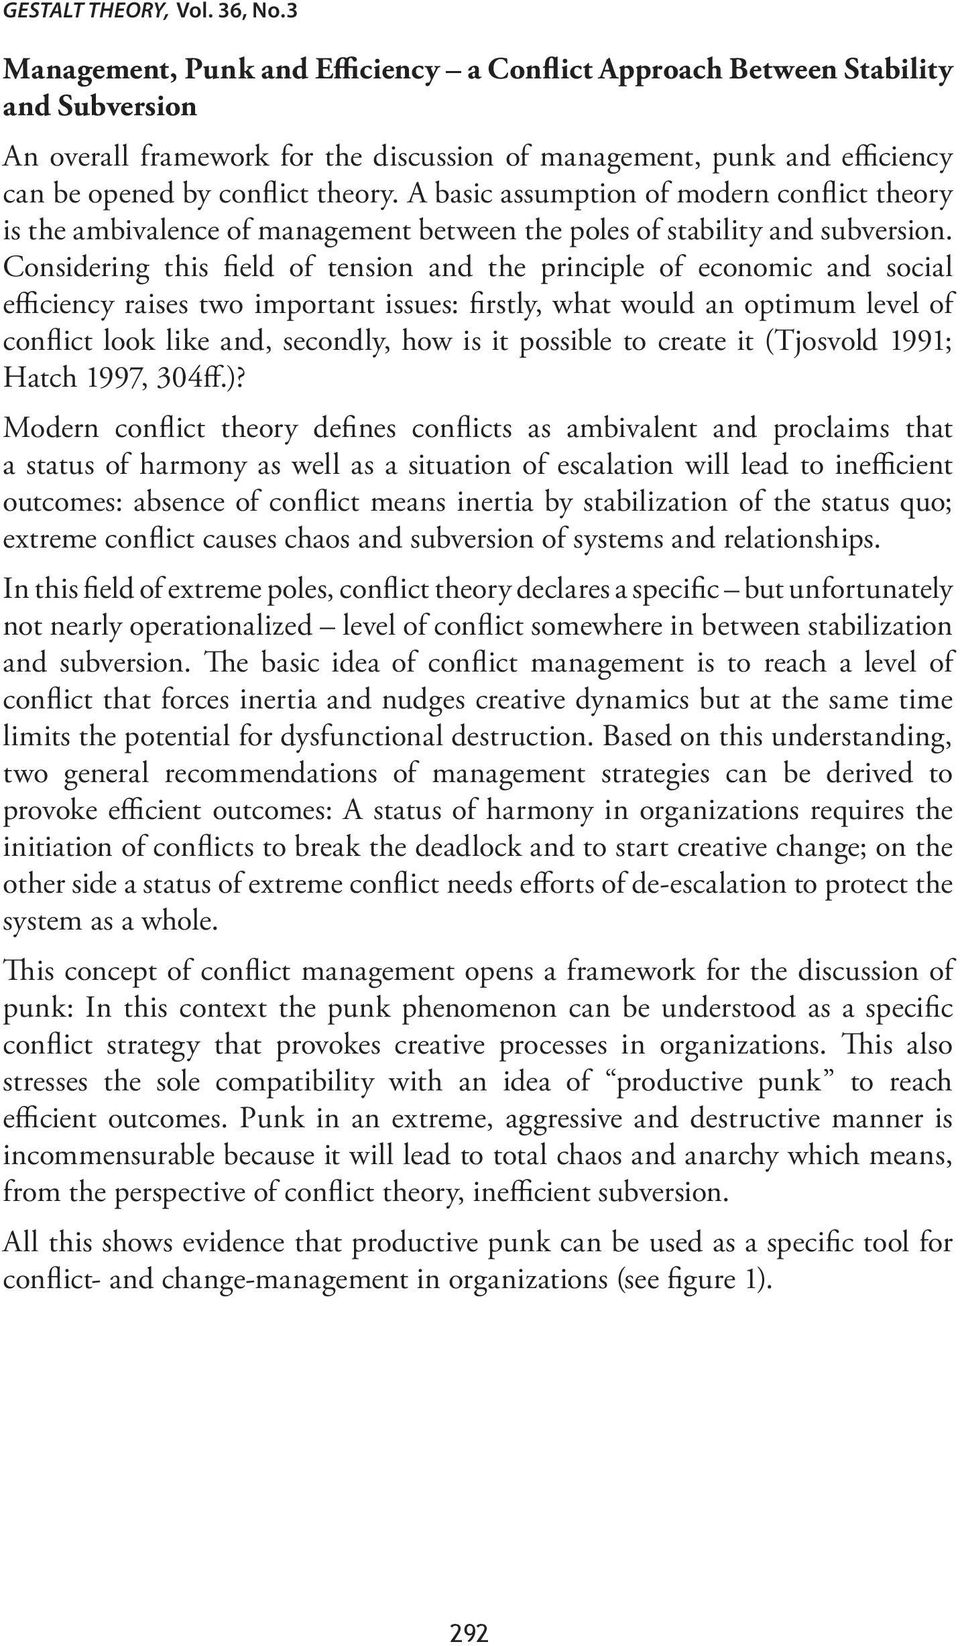 A basic assumption of modern conflict theory is the ambivalence of management between the poles of stability and subversion.